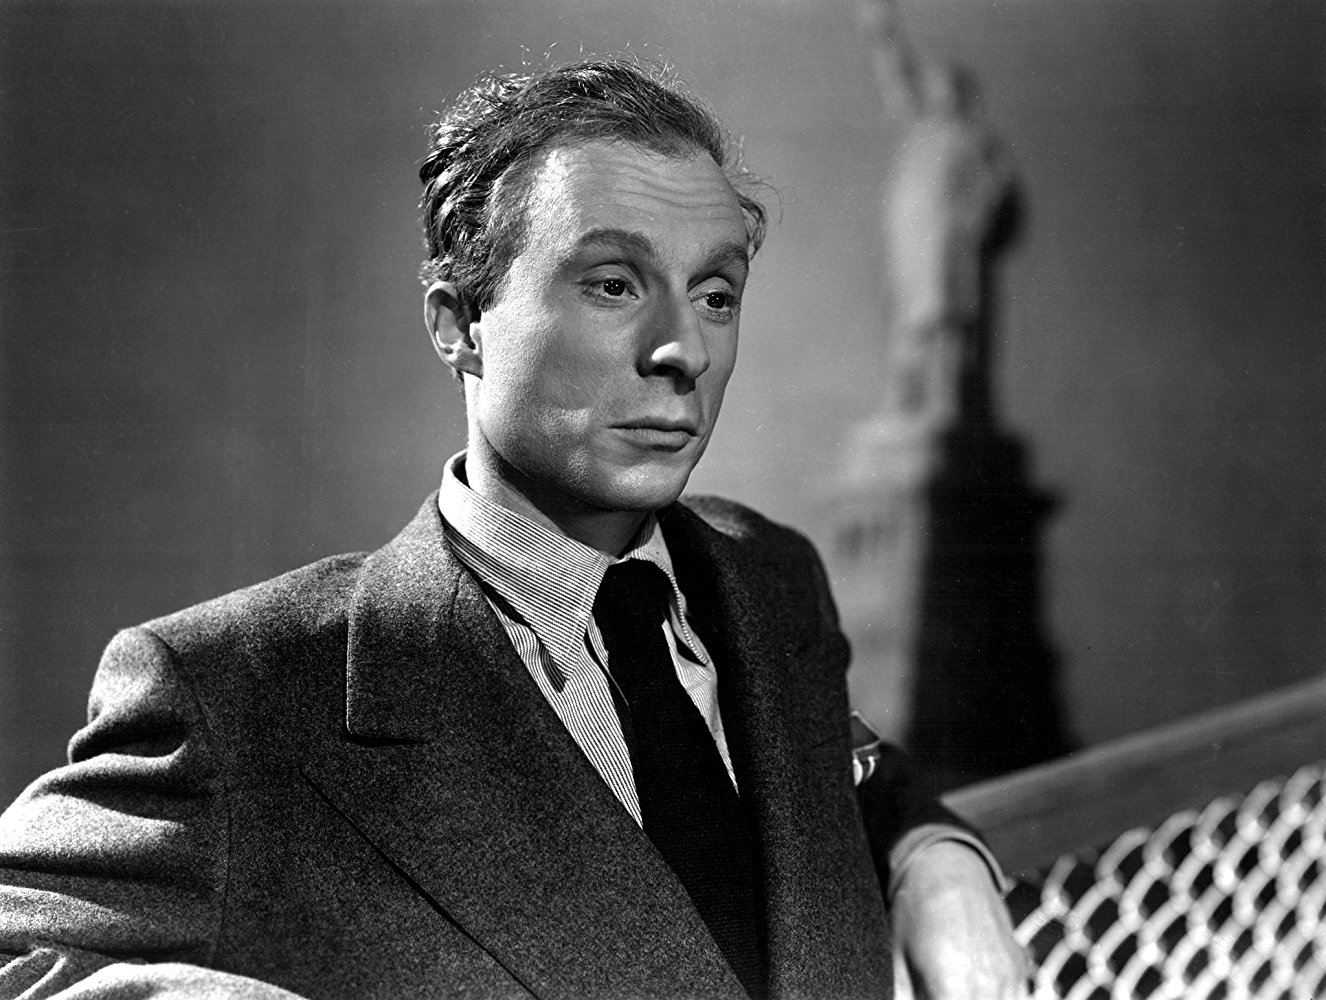 Norman Lloyd in Saboteur